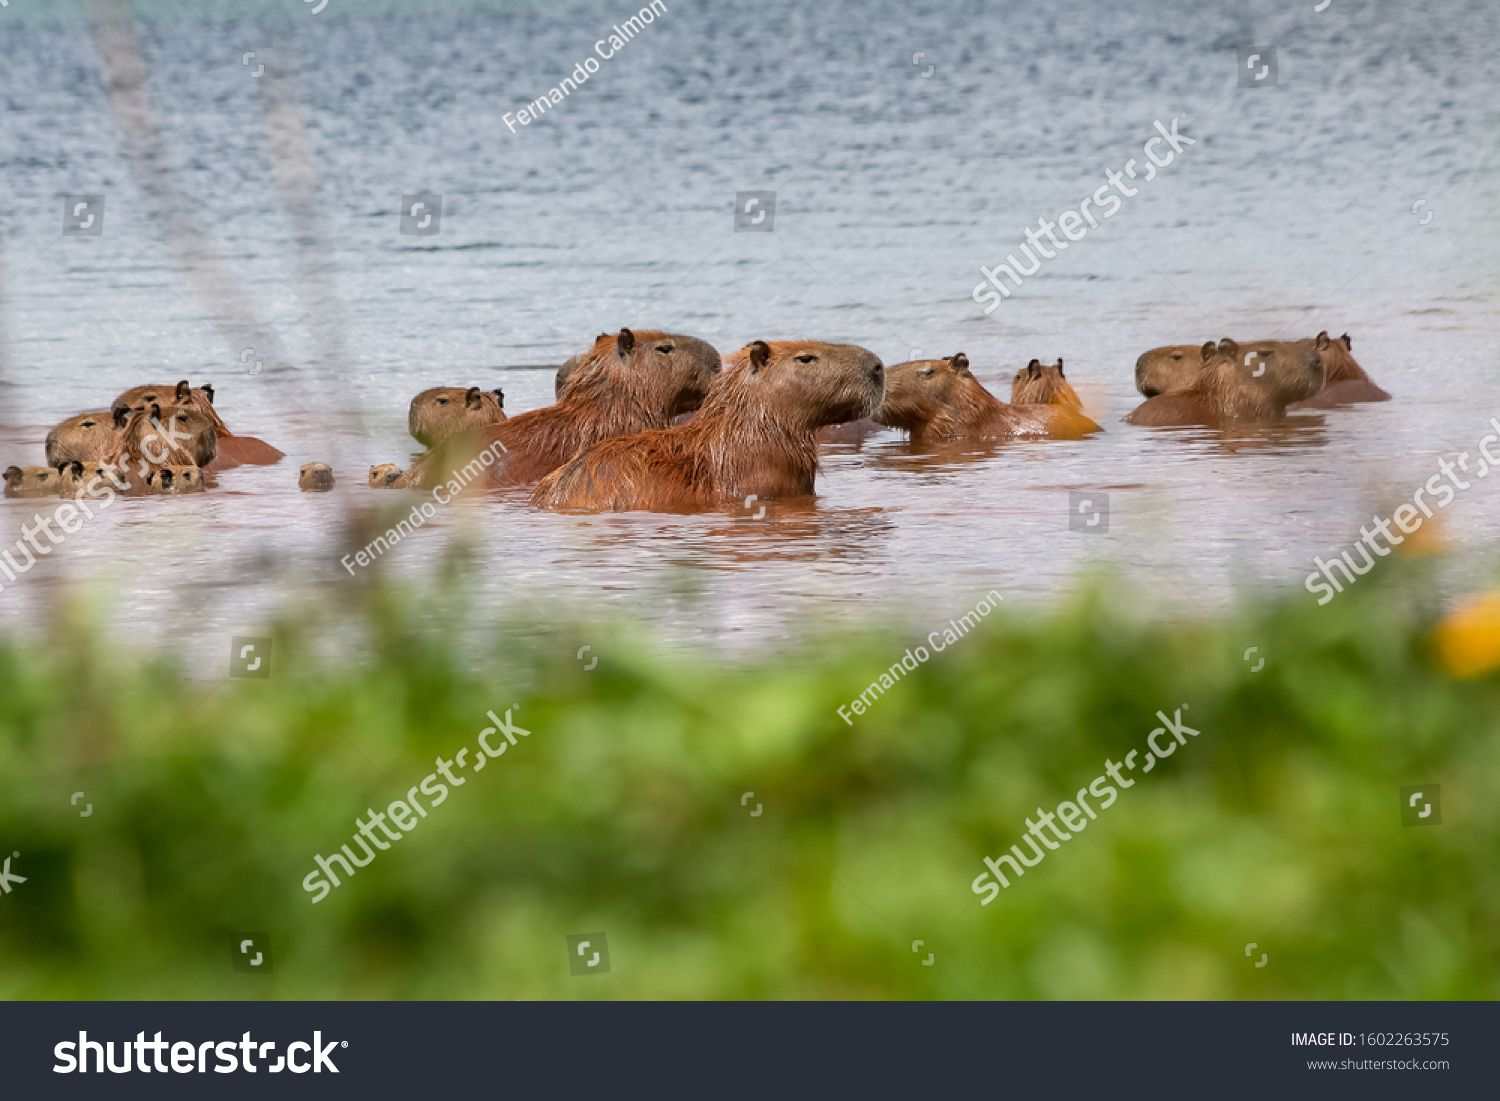 A large family of capybaras gathered inside Lake Parano¨¢ enjoying a sunbath. The capybara is the largest rodent in the world. Species Hydrochoerus hydrochaeris. Animal life. Wild animal. #Ad , #AD, #enjoying#Parano#capybara#sunbath